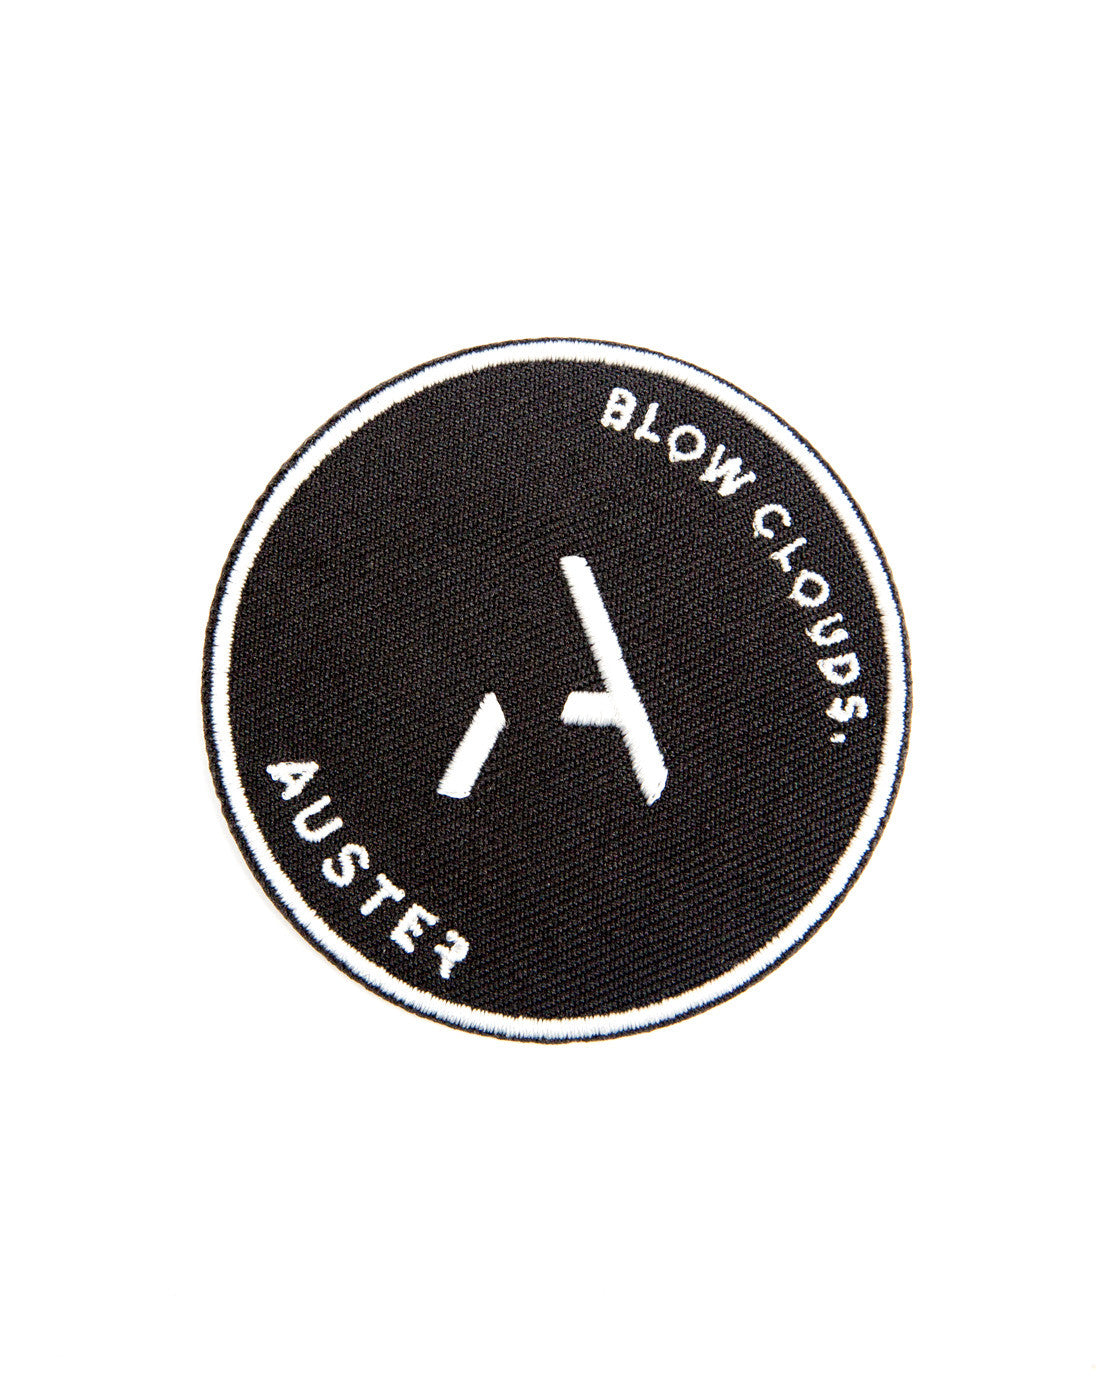 AUSTER PATCH SERIES 1<br> (for a little style boost)